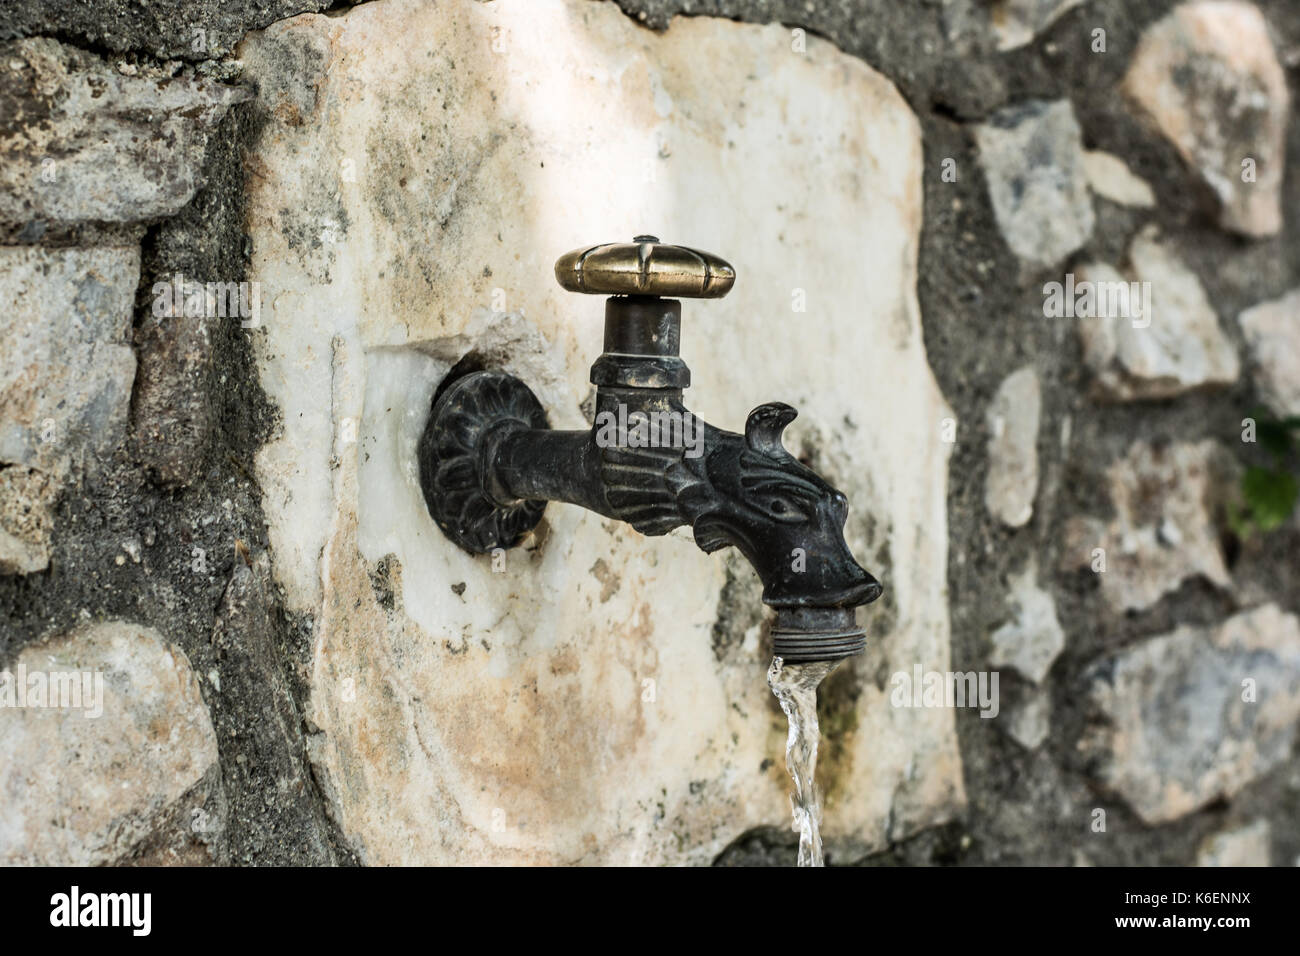 Vintage Water Faucet Stock Photos Vintage Water Faucet Stock Images Alamy